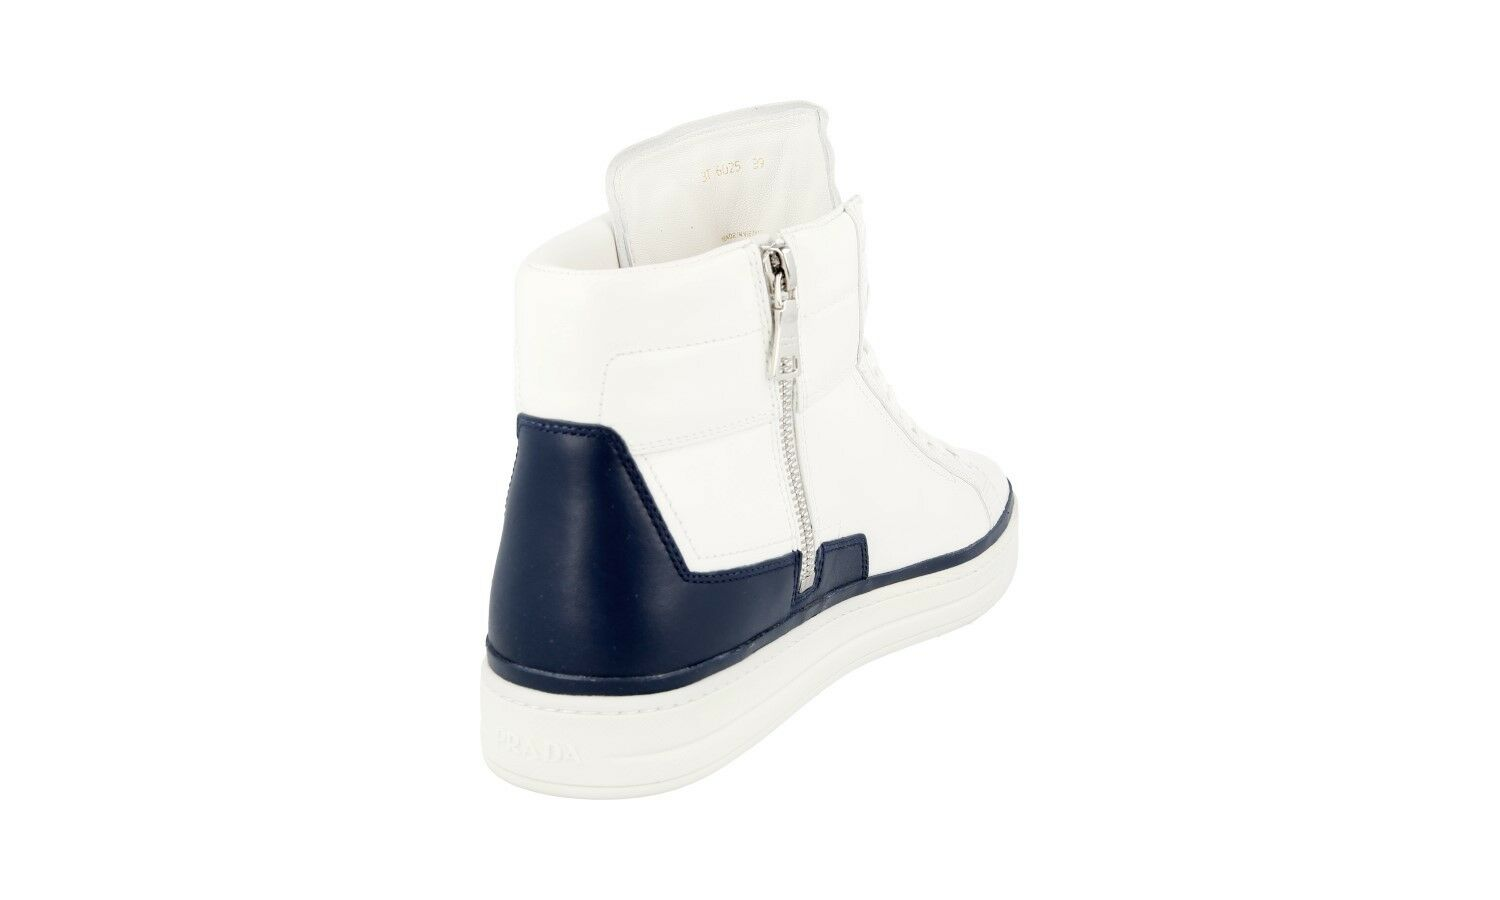 AUTH AUTH AUTH PRADA HIGH TOP SNEAKERS SHOES 3T6025 WHITE + blueE US 9 EU 39 39,5 UK 6 980280